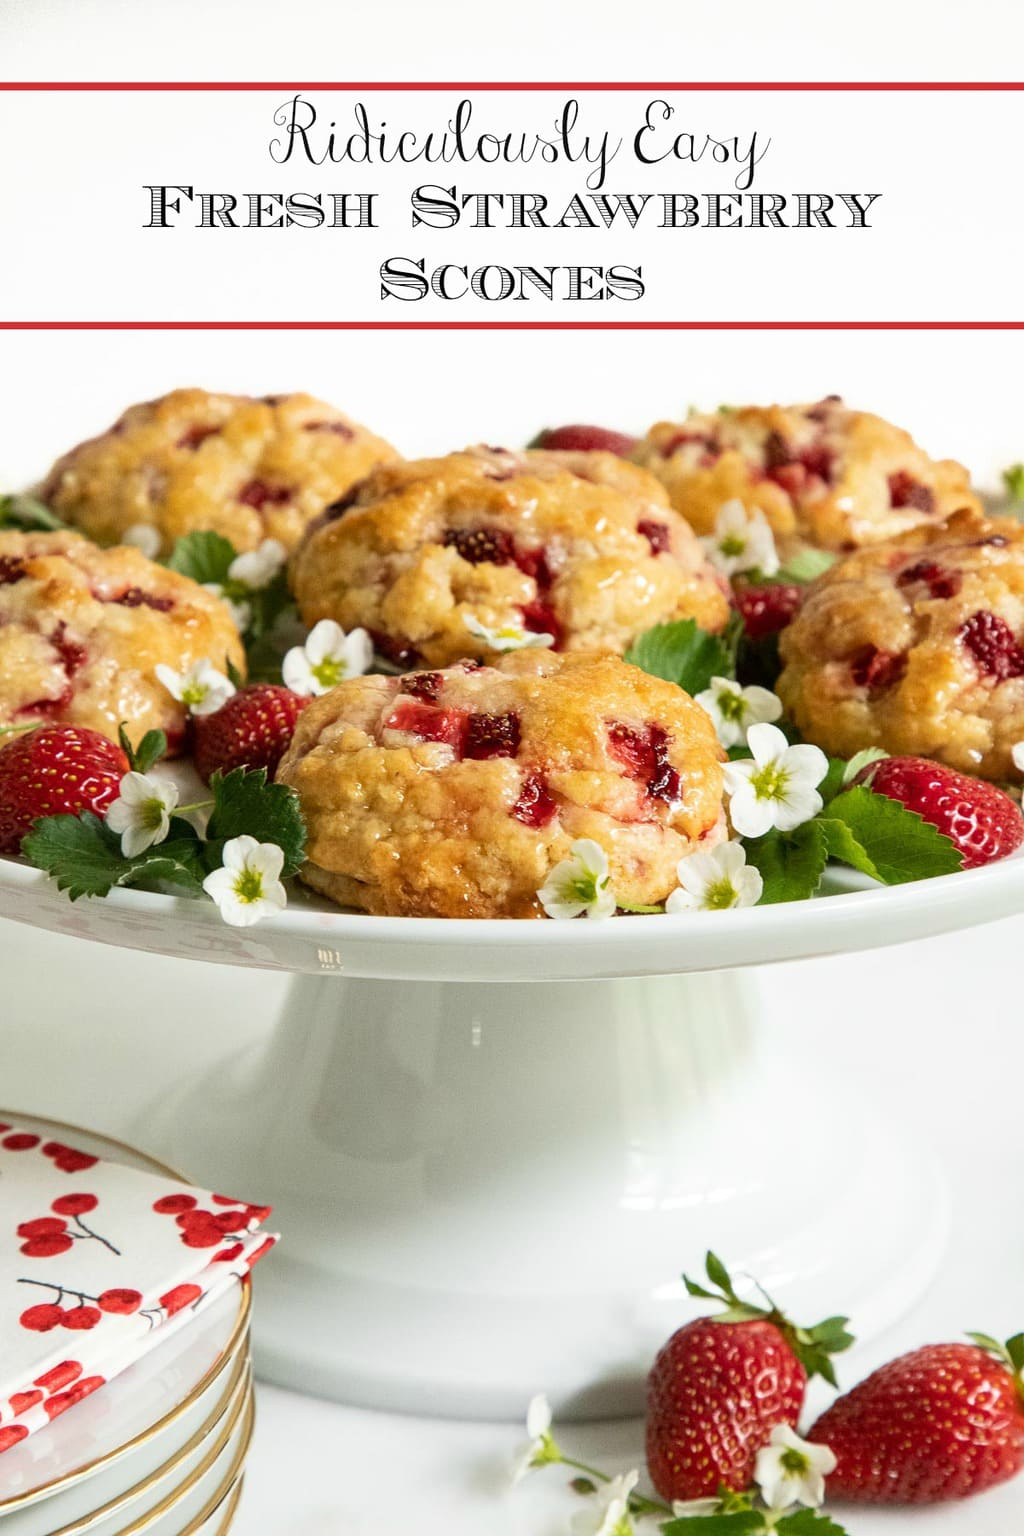 Ridiculously Easy Fresh Strawberry Scones